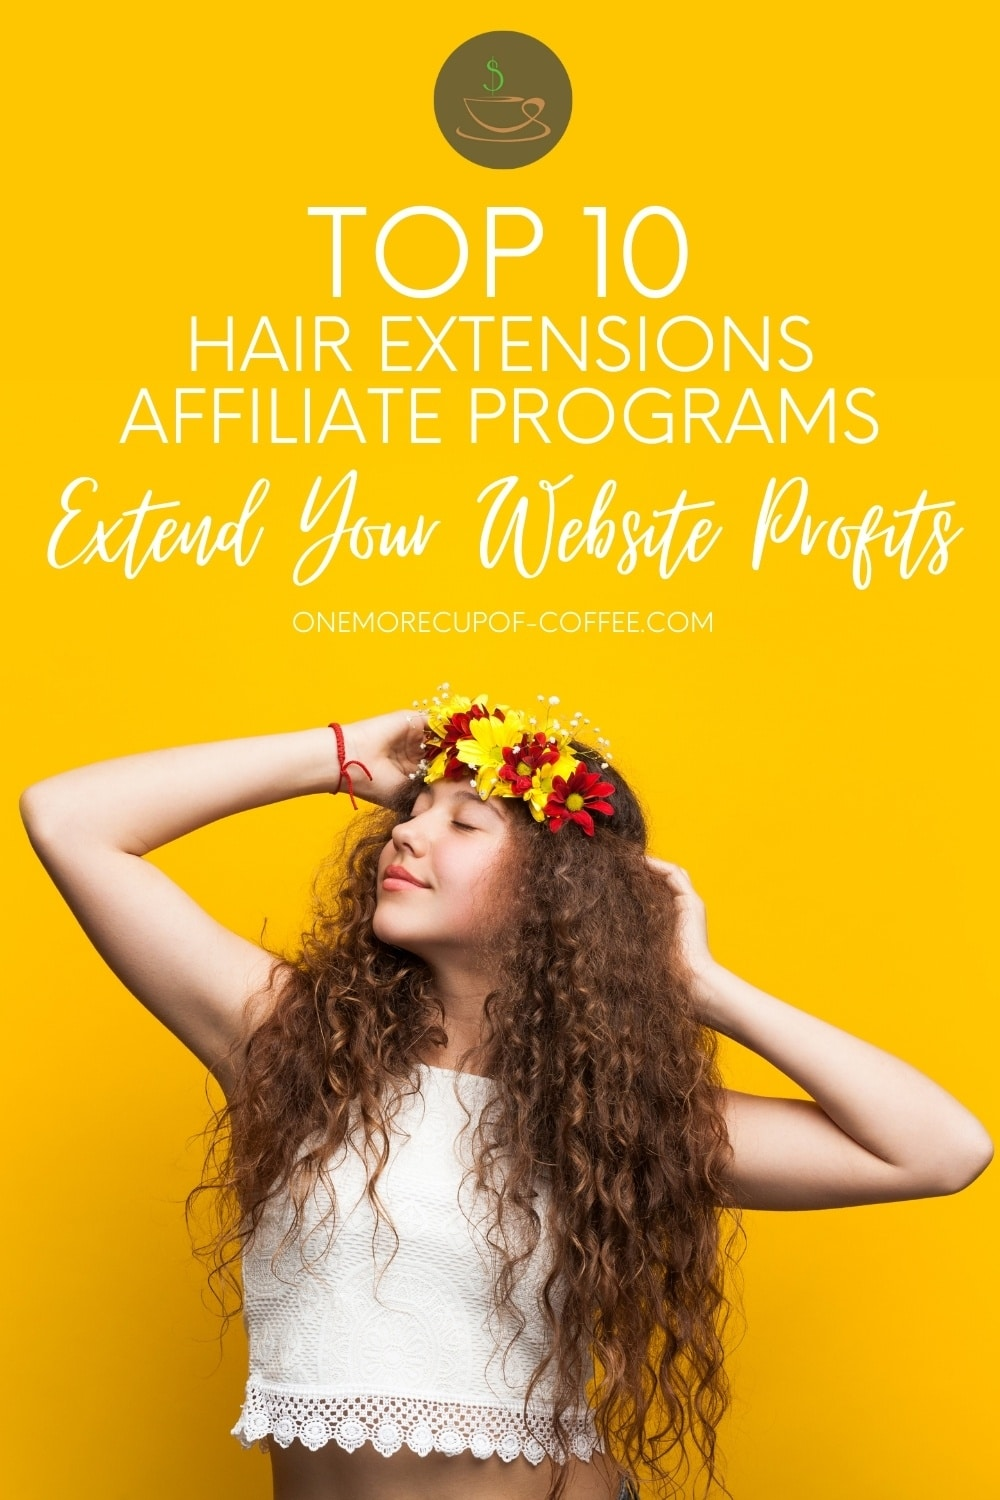 smiling woman in white sleeveless top, eyes close, both hands poise up her long thick curly hair with flower crown, posing against a yellow background with text overlay